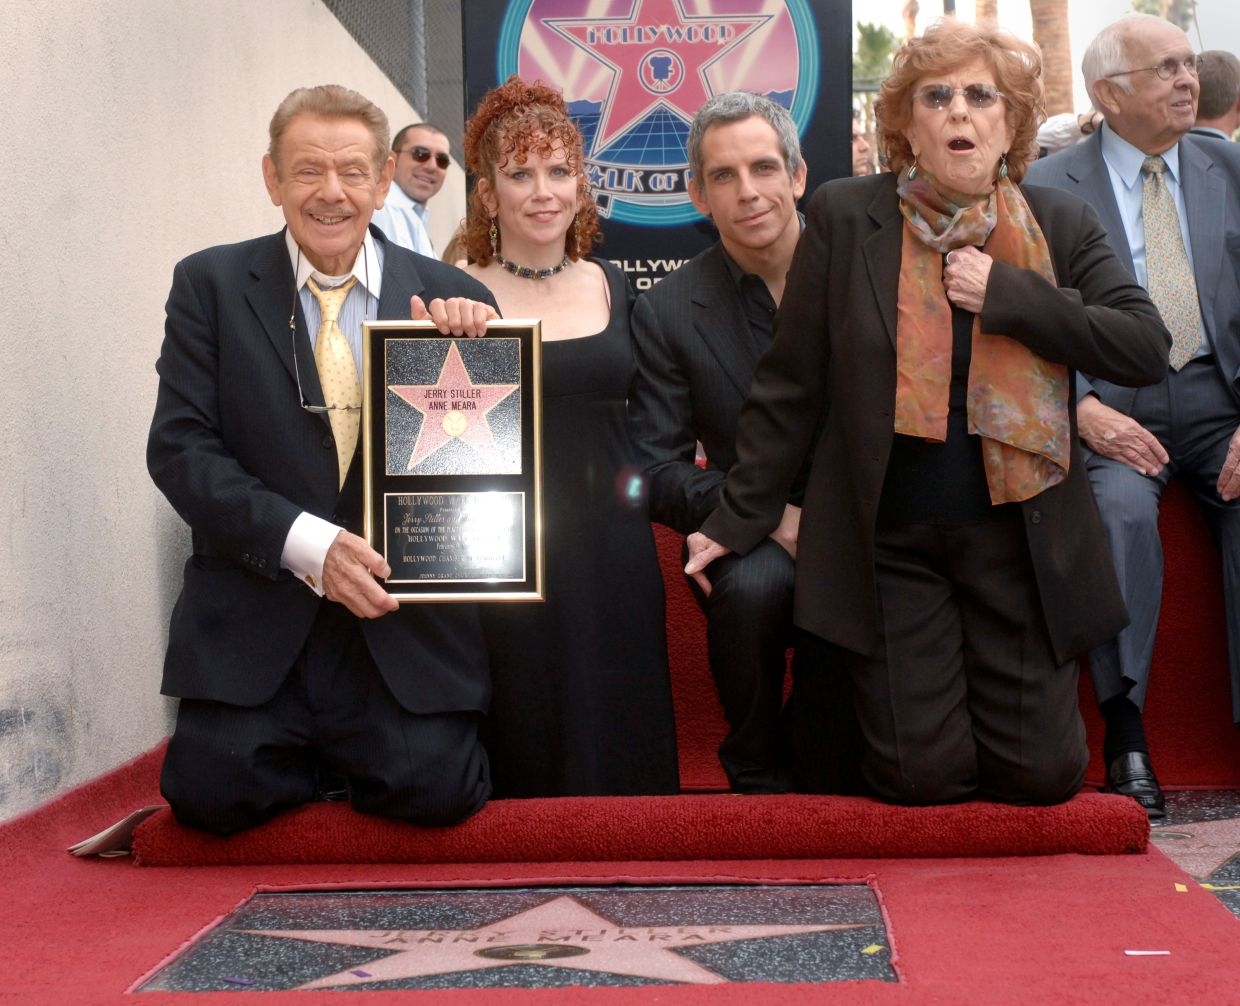 File photo: Brother and sister Amy (2nd L) and Ben Stiller (2nd R) pose for pictures at a ceremony where their parents Jerry Stiller and Anne Meara are honoured with a star on the Hollywood Walk of Fame in Los Angeles, California February 9, 2007. Photo: Reuters